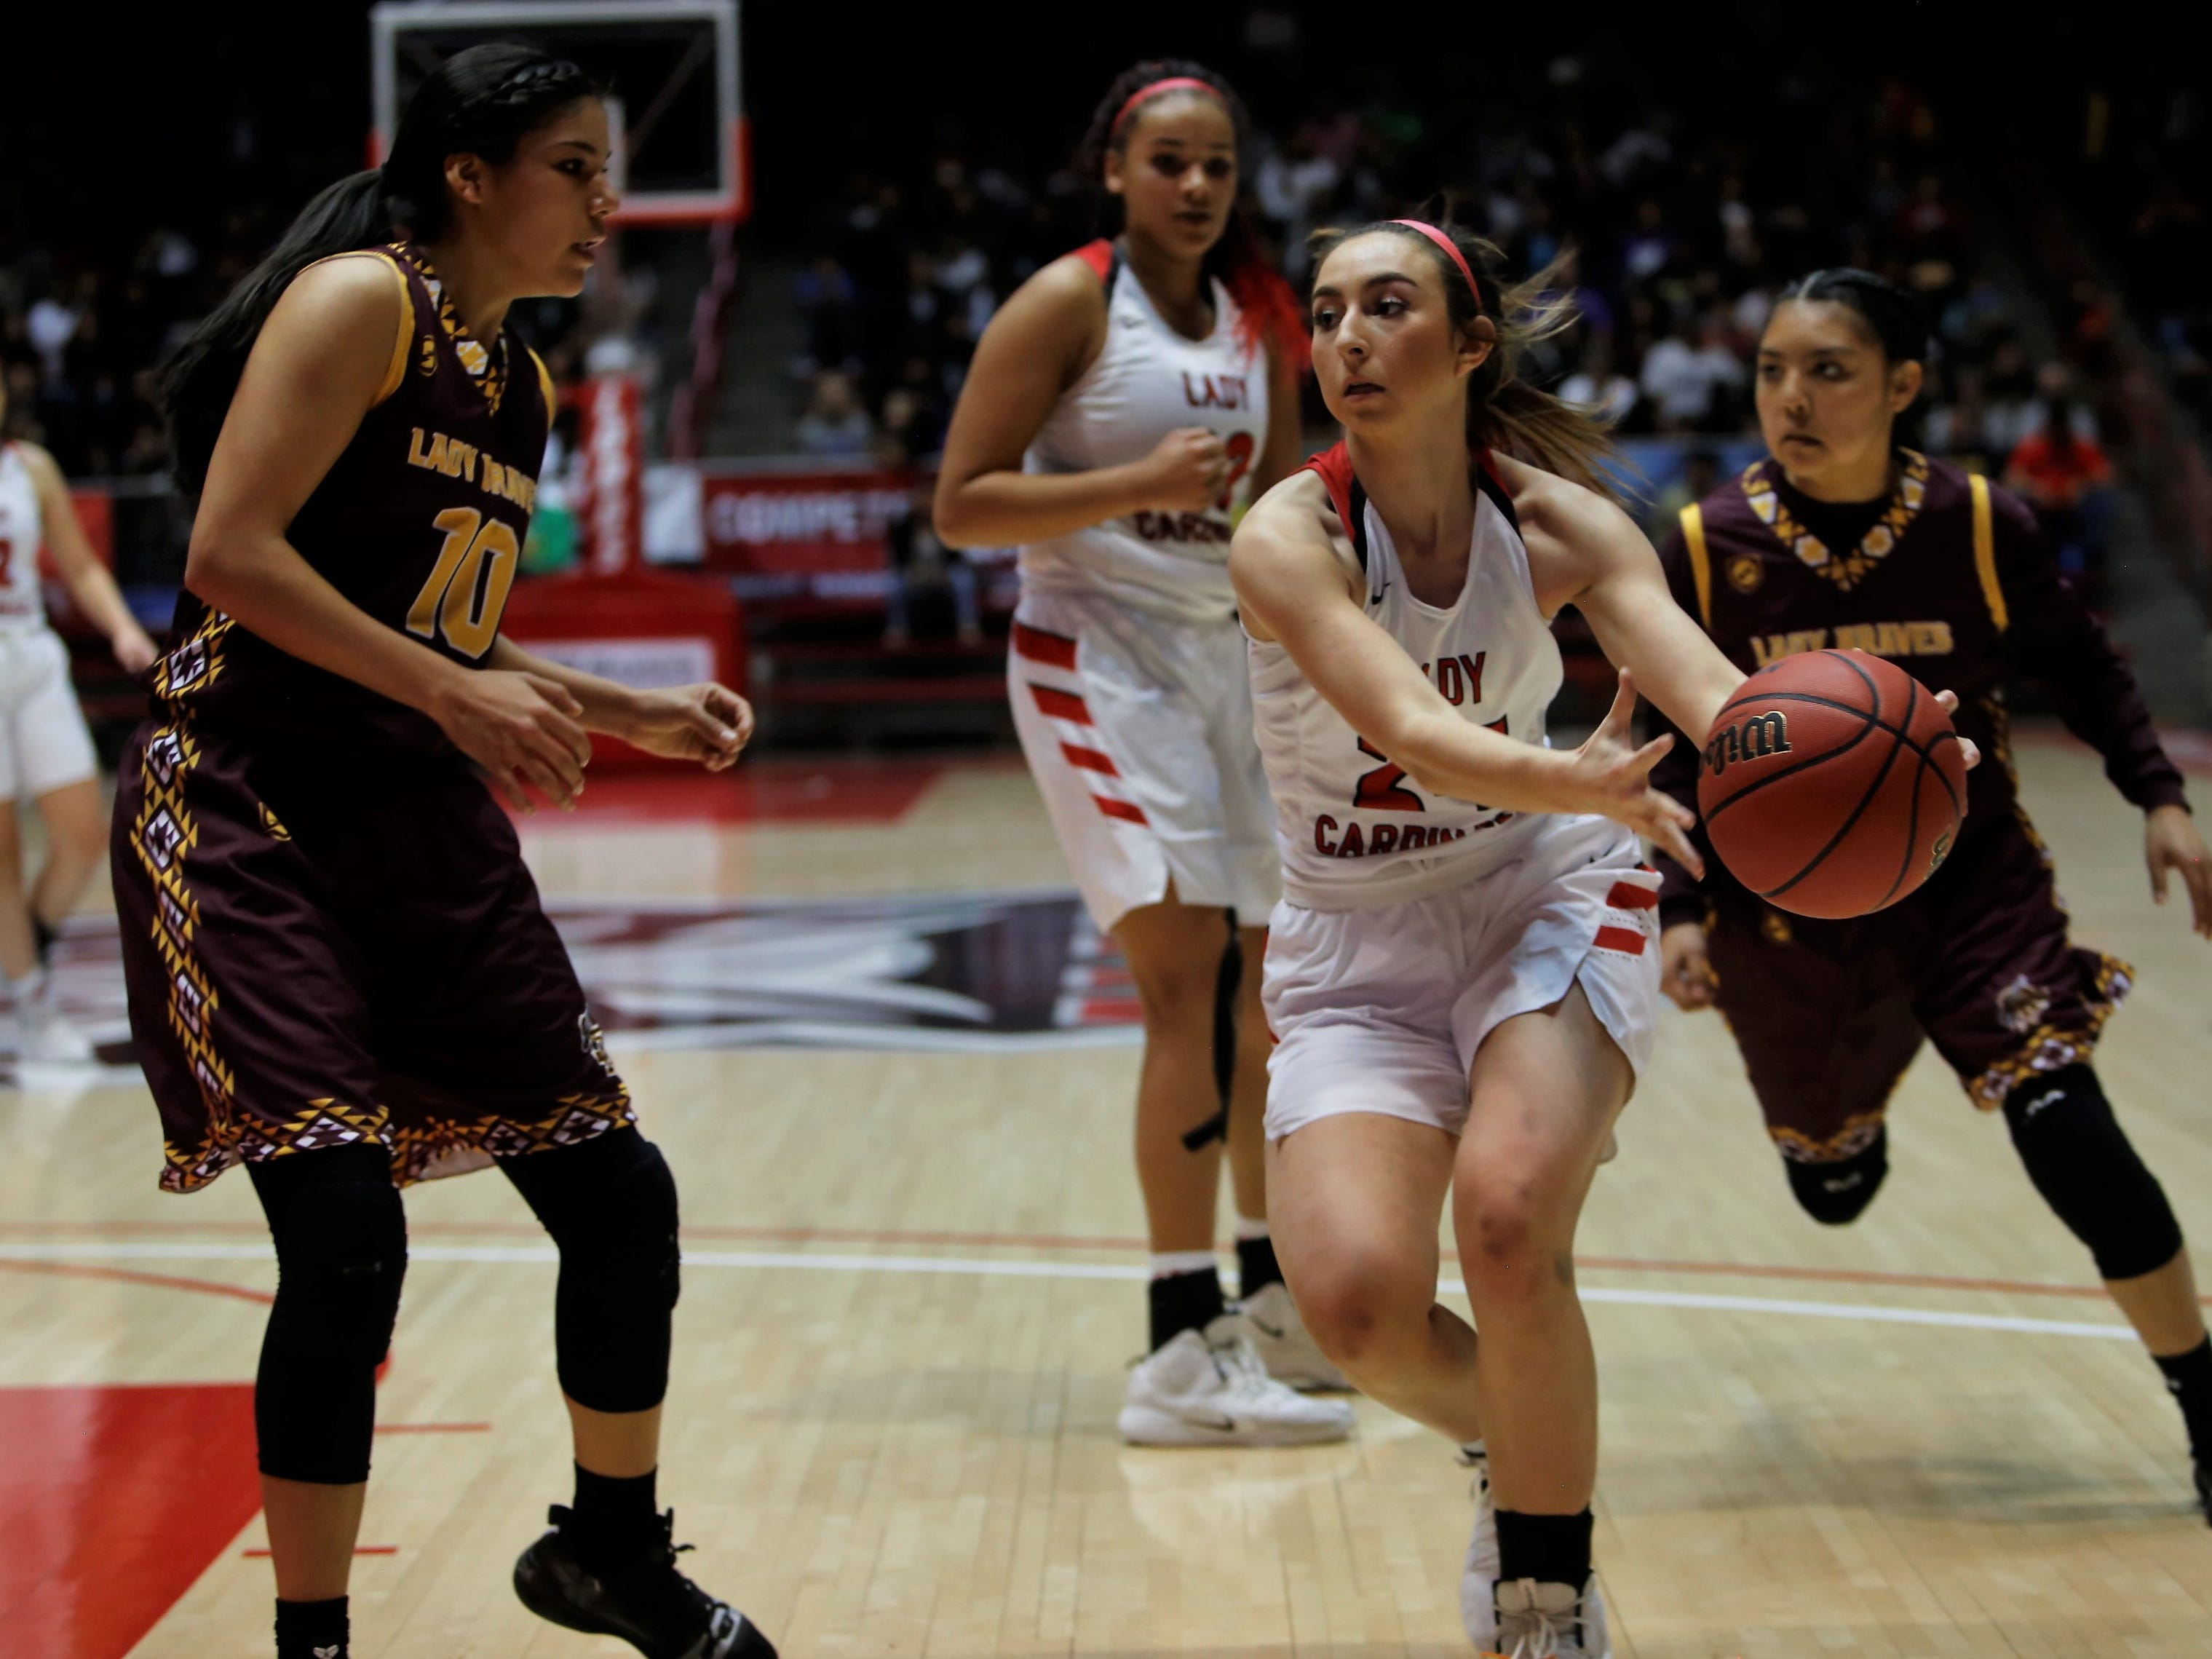 Robertson's Tessa Ortiz drives toward the basket against Santa Fe Indian's Leanna Lewis (10) during Friday's 3A state championship game at Dreamstyle Arena in Albuquerque.